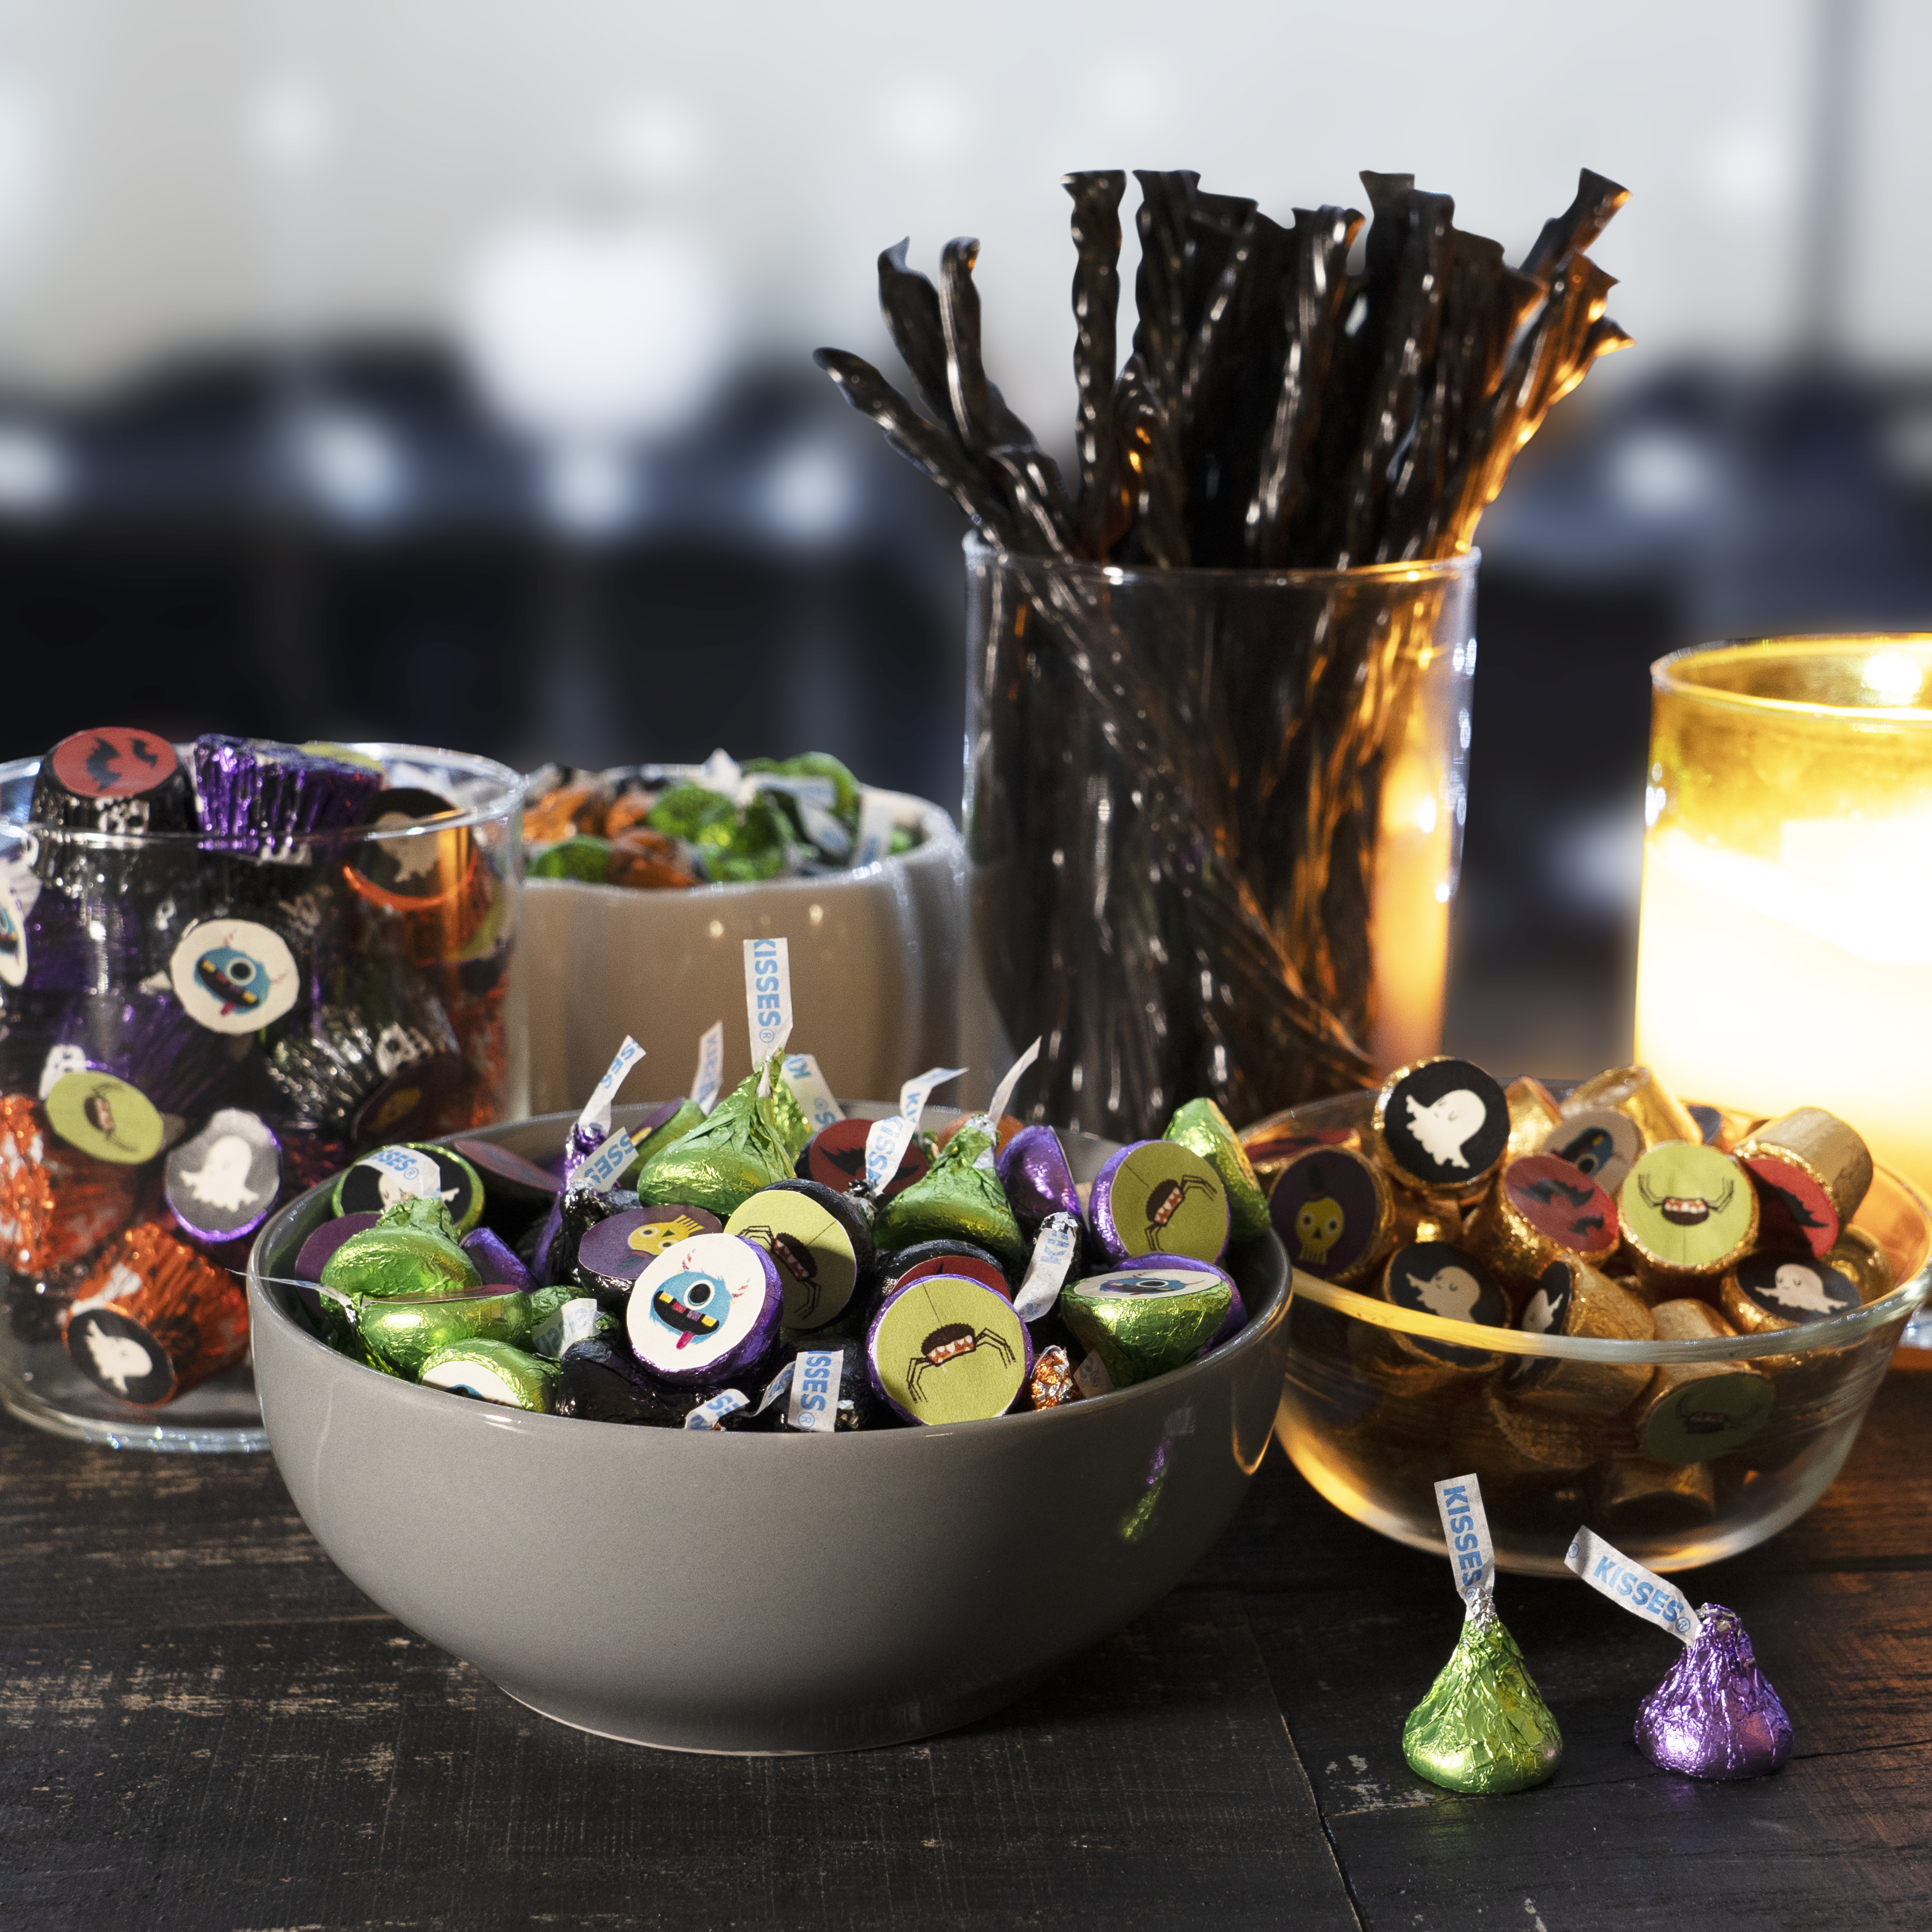 Halloween Commercial 2020 Who Thought Giving Candy To Kids Was A Good Idea? Candy companies are preparing for a COVID 19 Halloween | Fortune